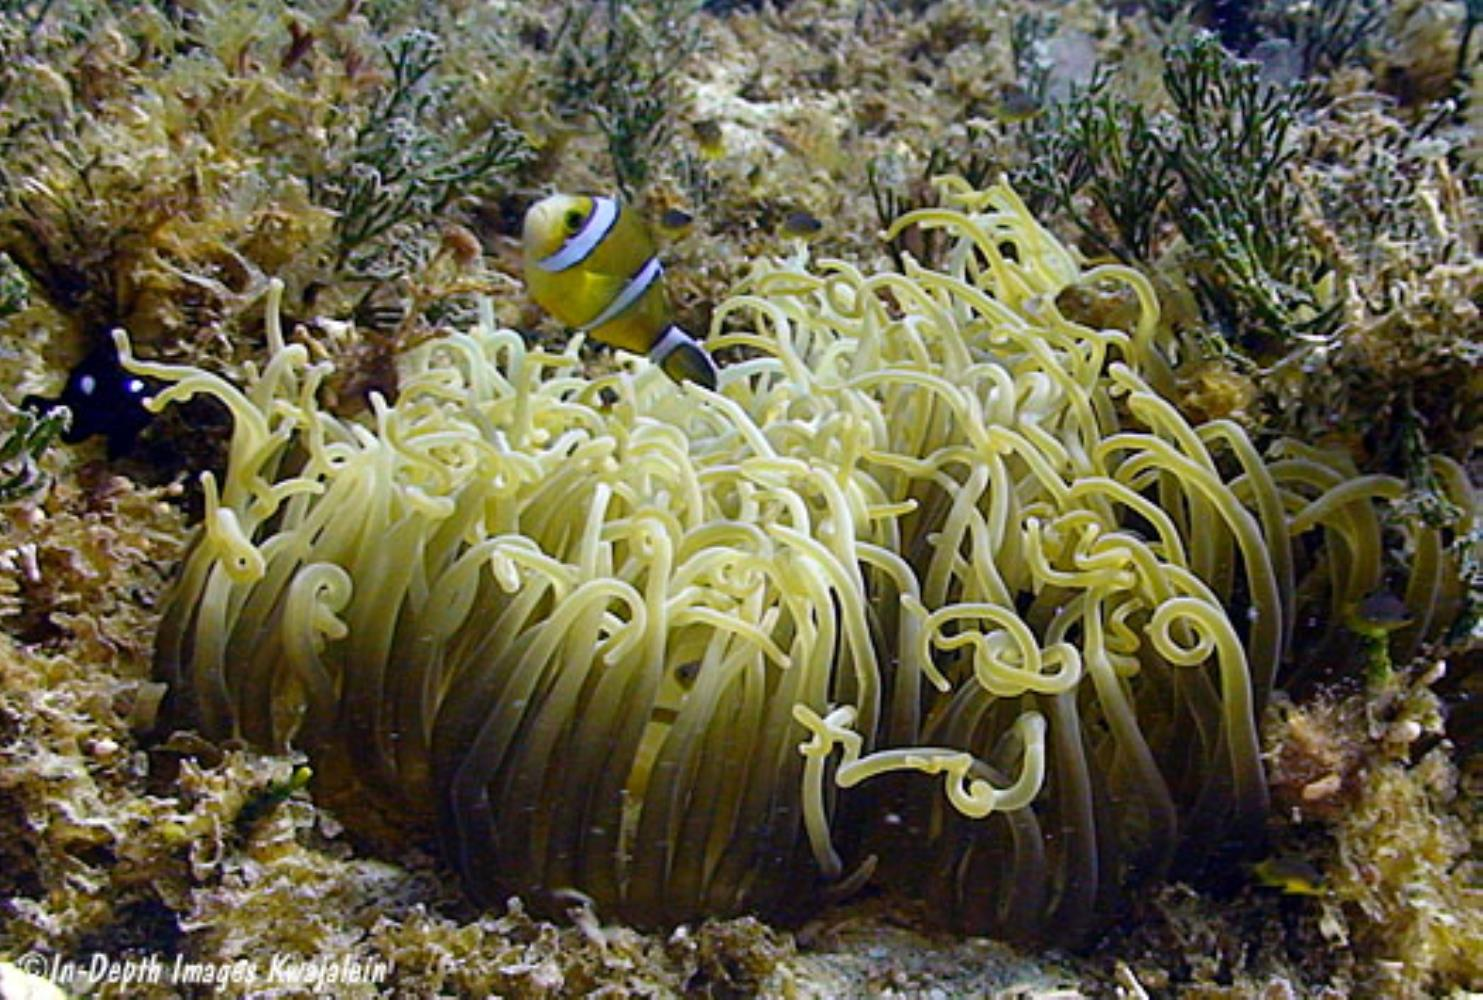 Corkscrew Tentacle Sea Anemone